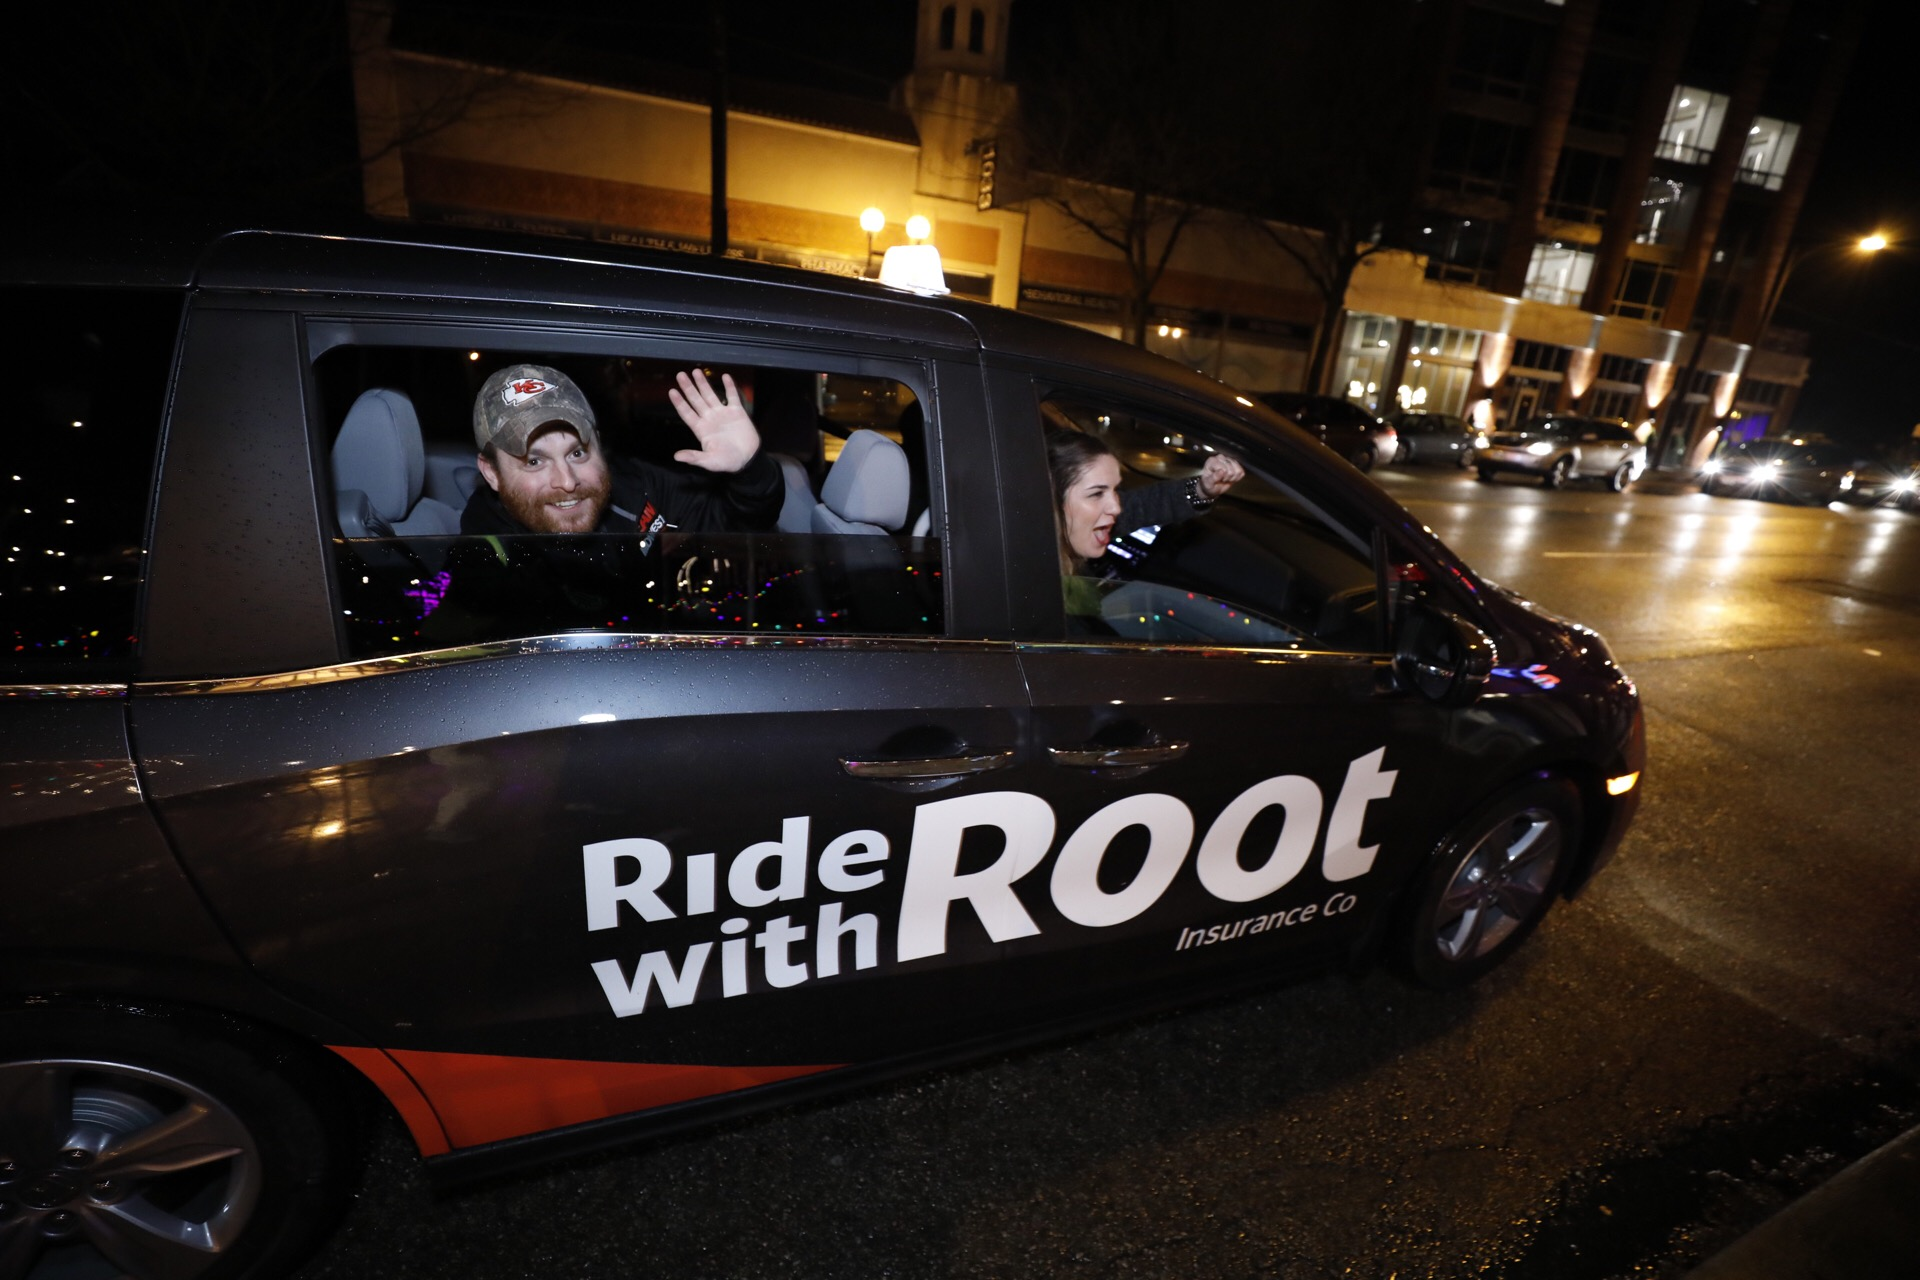 Ride with Root - People in Car Waving